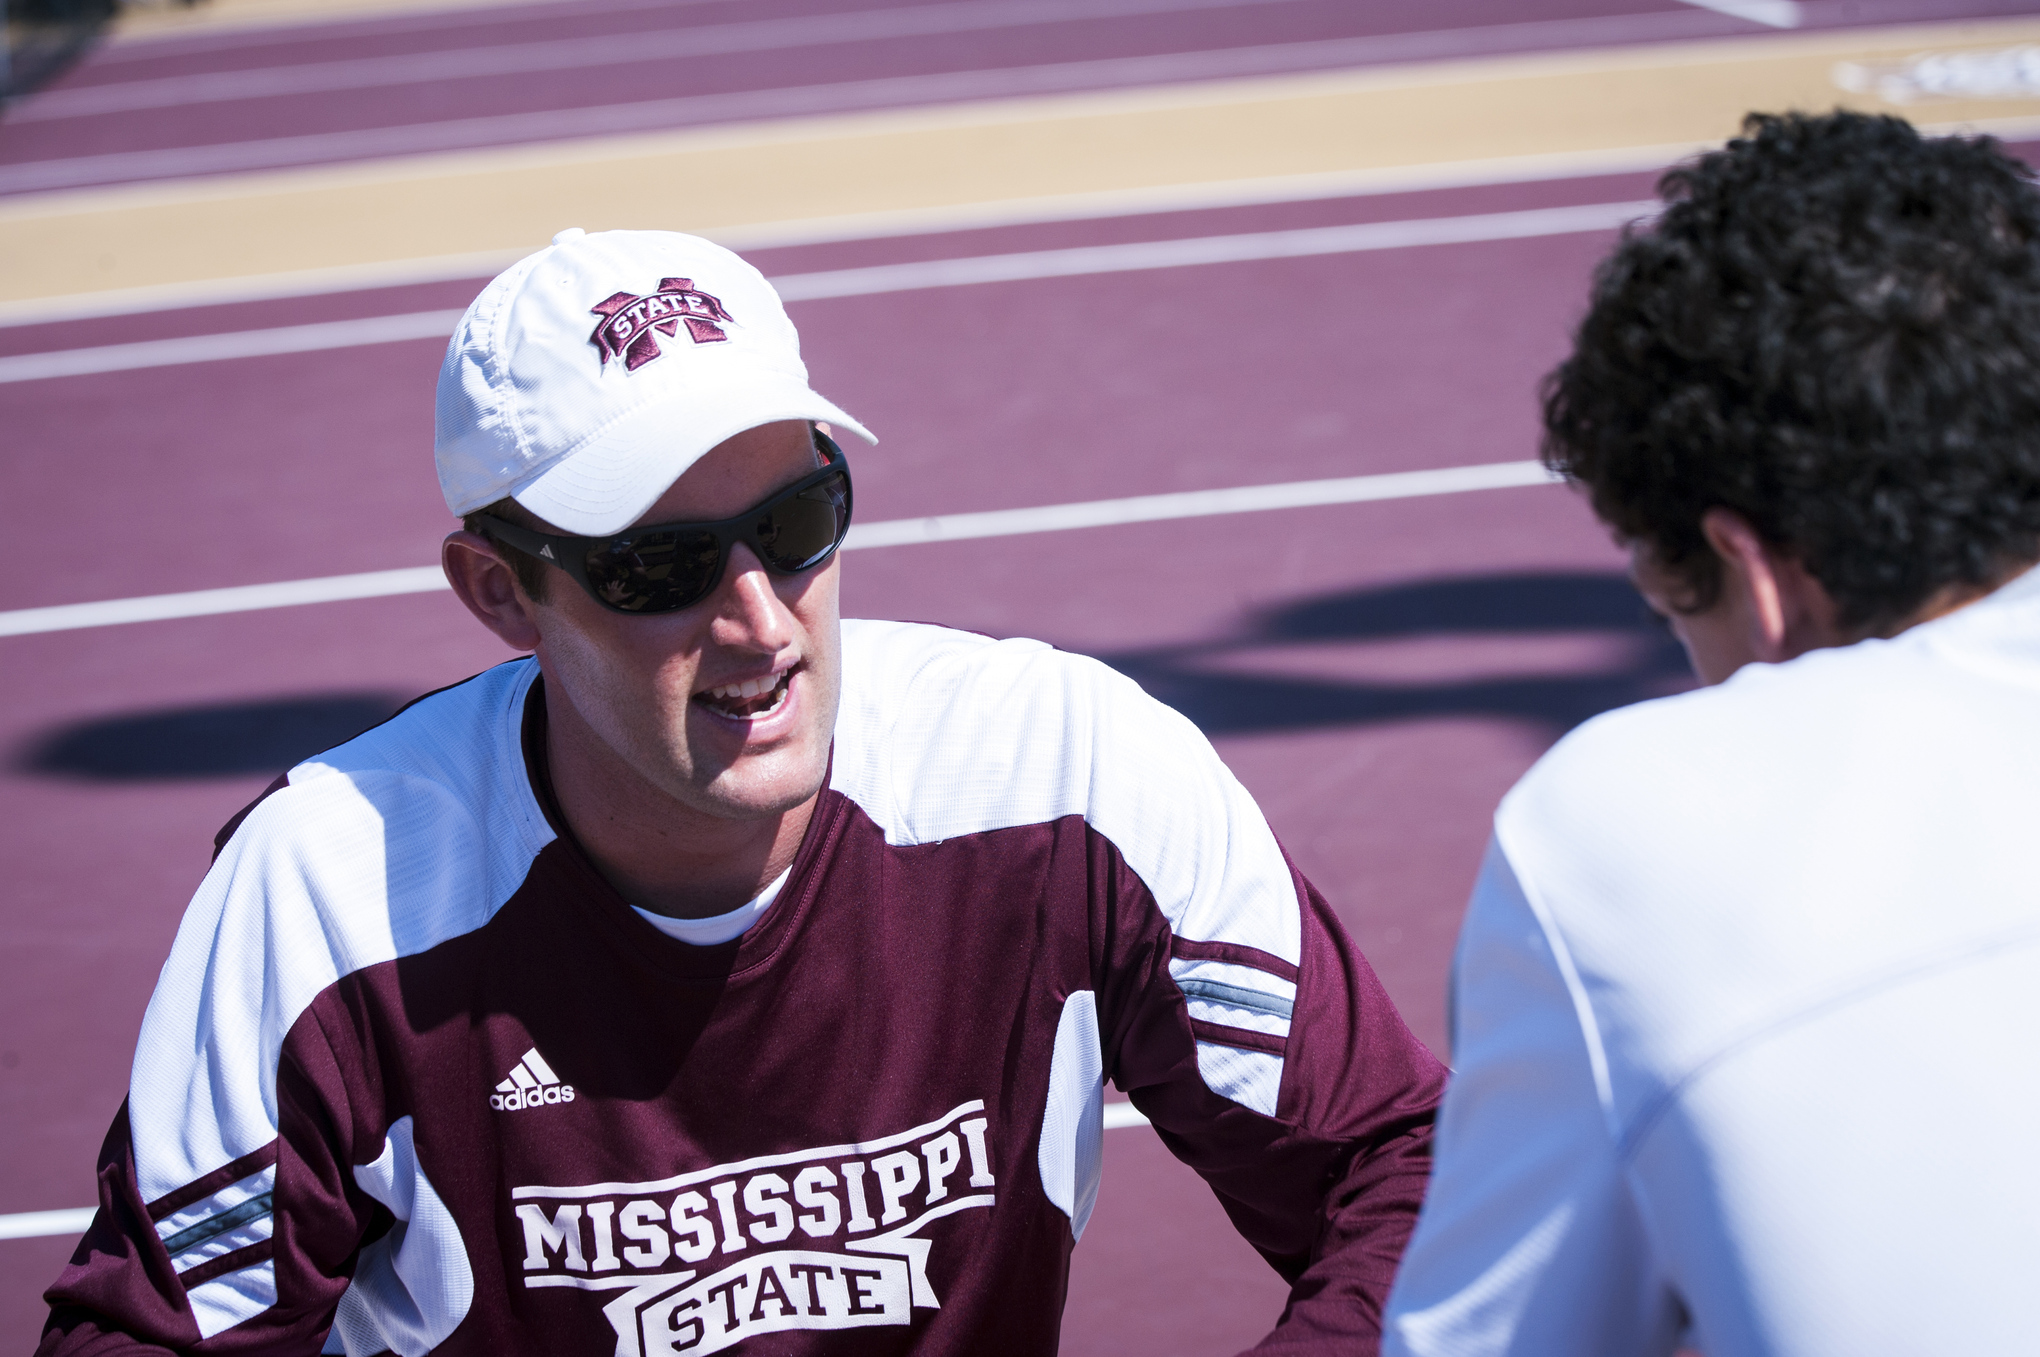 Matt Roberts has been selected as the new Mississippi State Men's Tennis coach